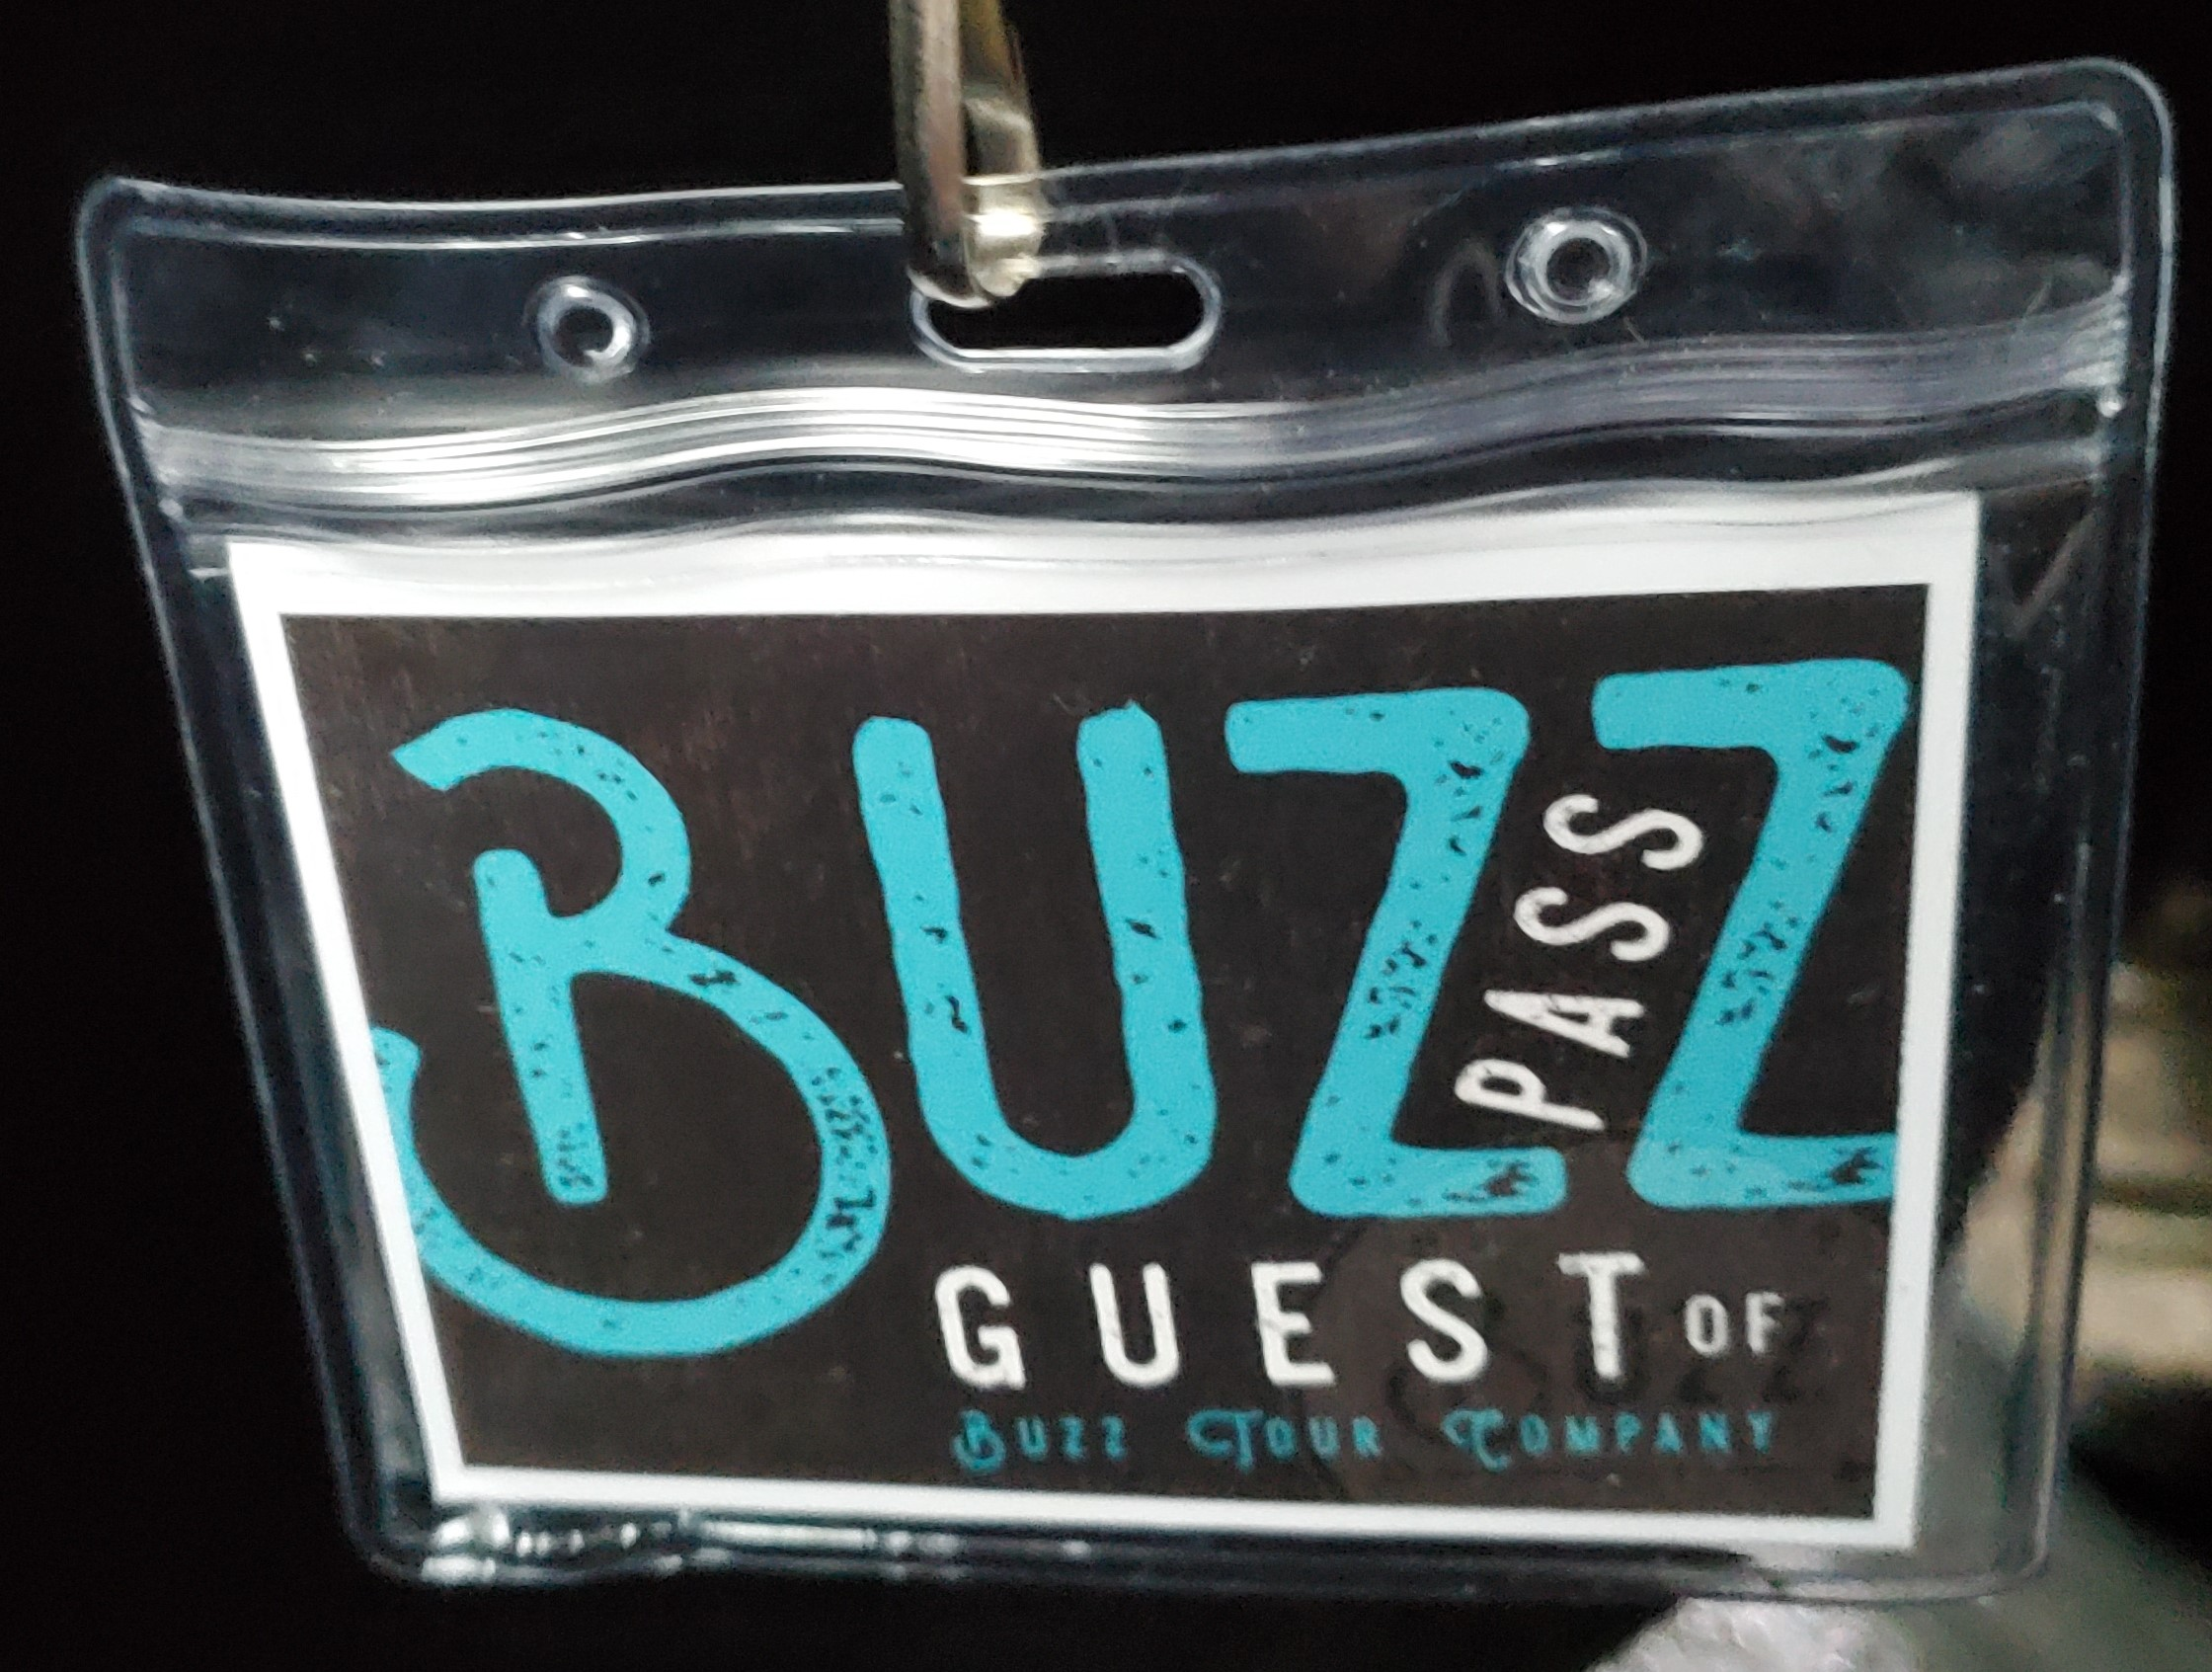 catch-the-buzz-with-buzz-tour-co